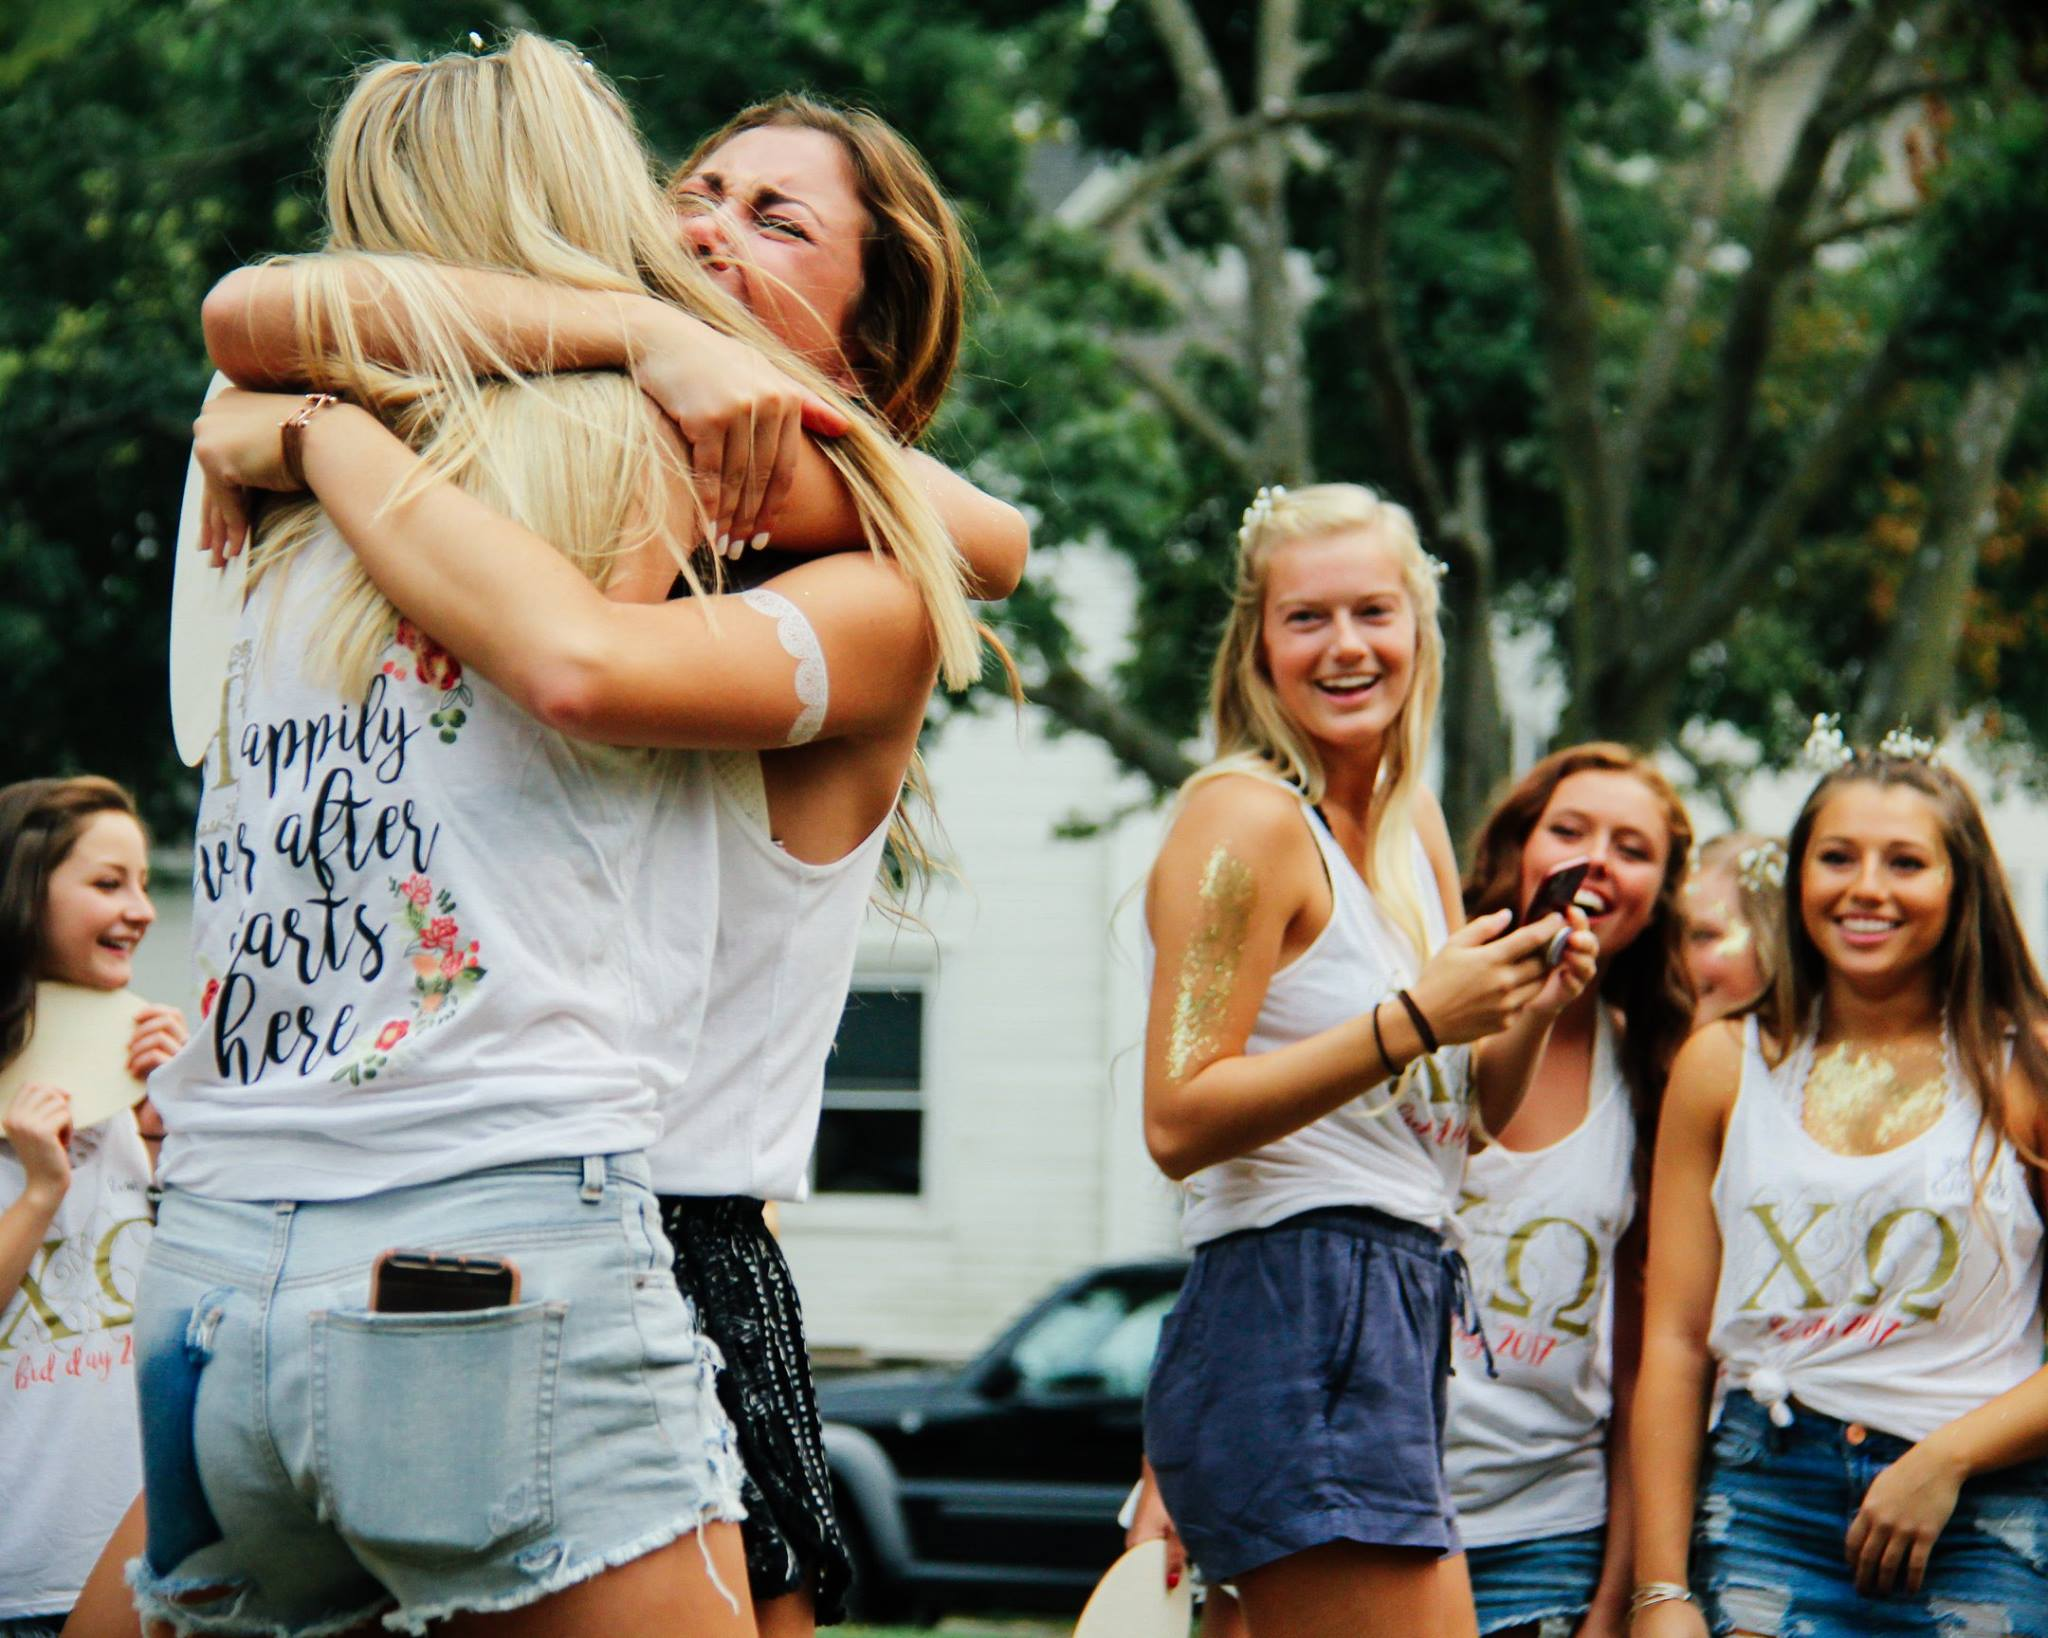 iowa_chi_omega_bid_day_happily_ever_after